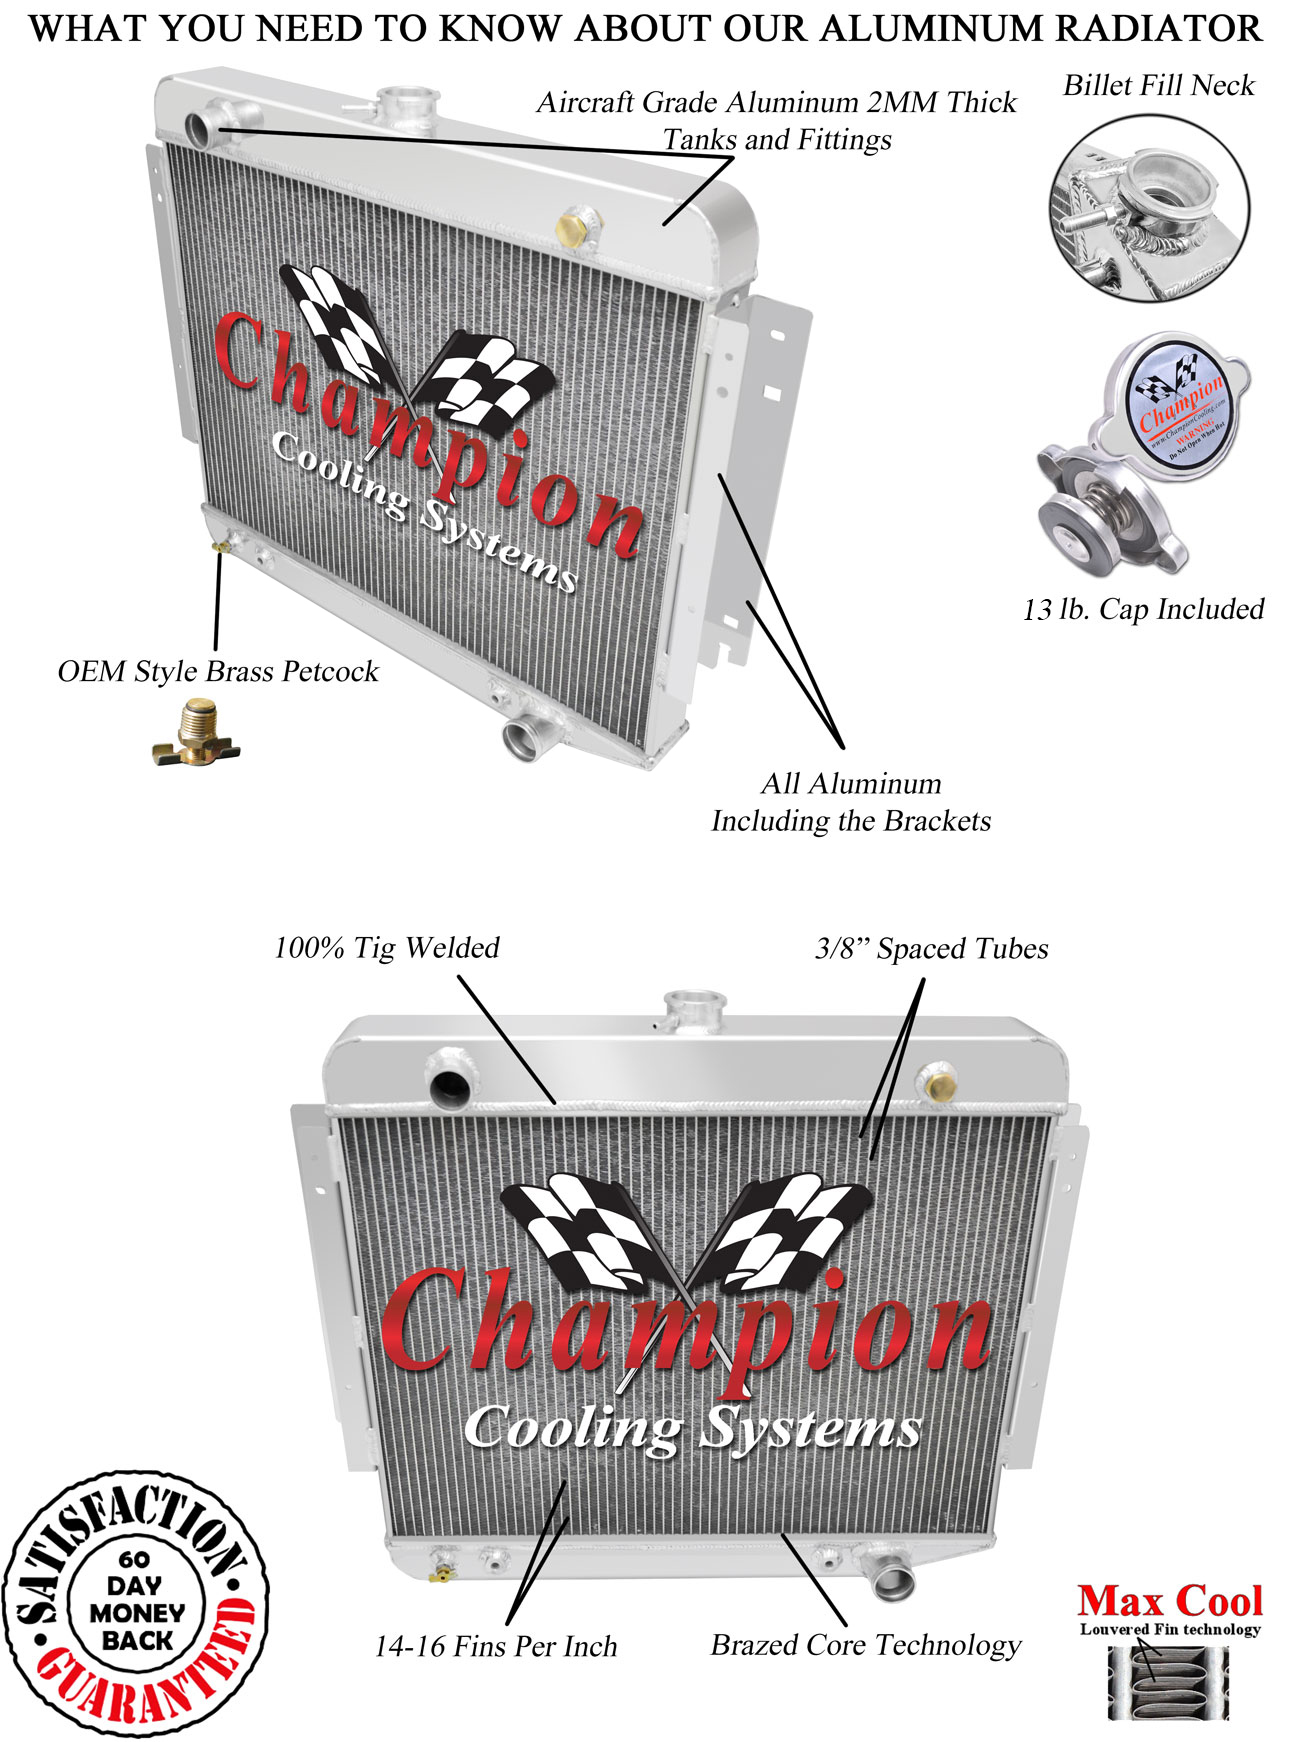 https://www.championcooling.com/photos/Photos%20White/Without%20Fans/889/889_d_w.jpg